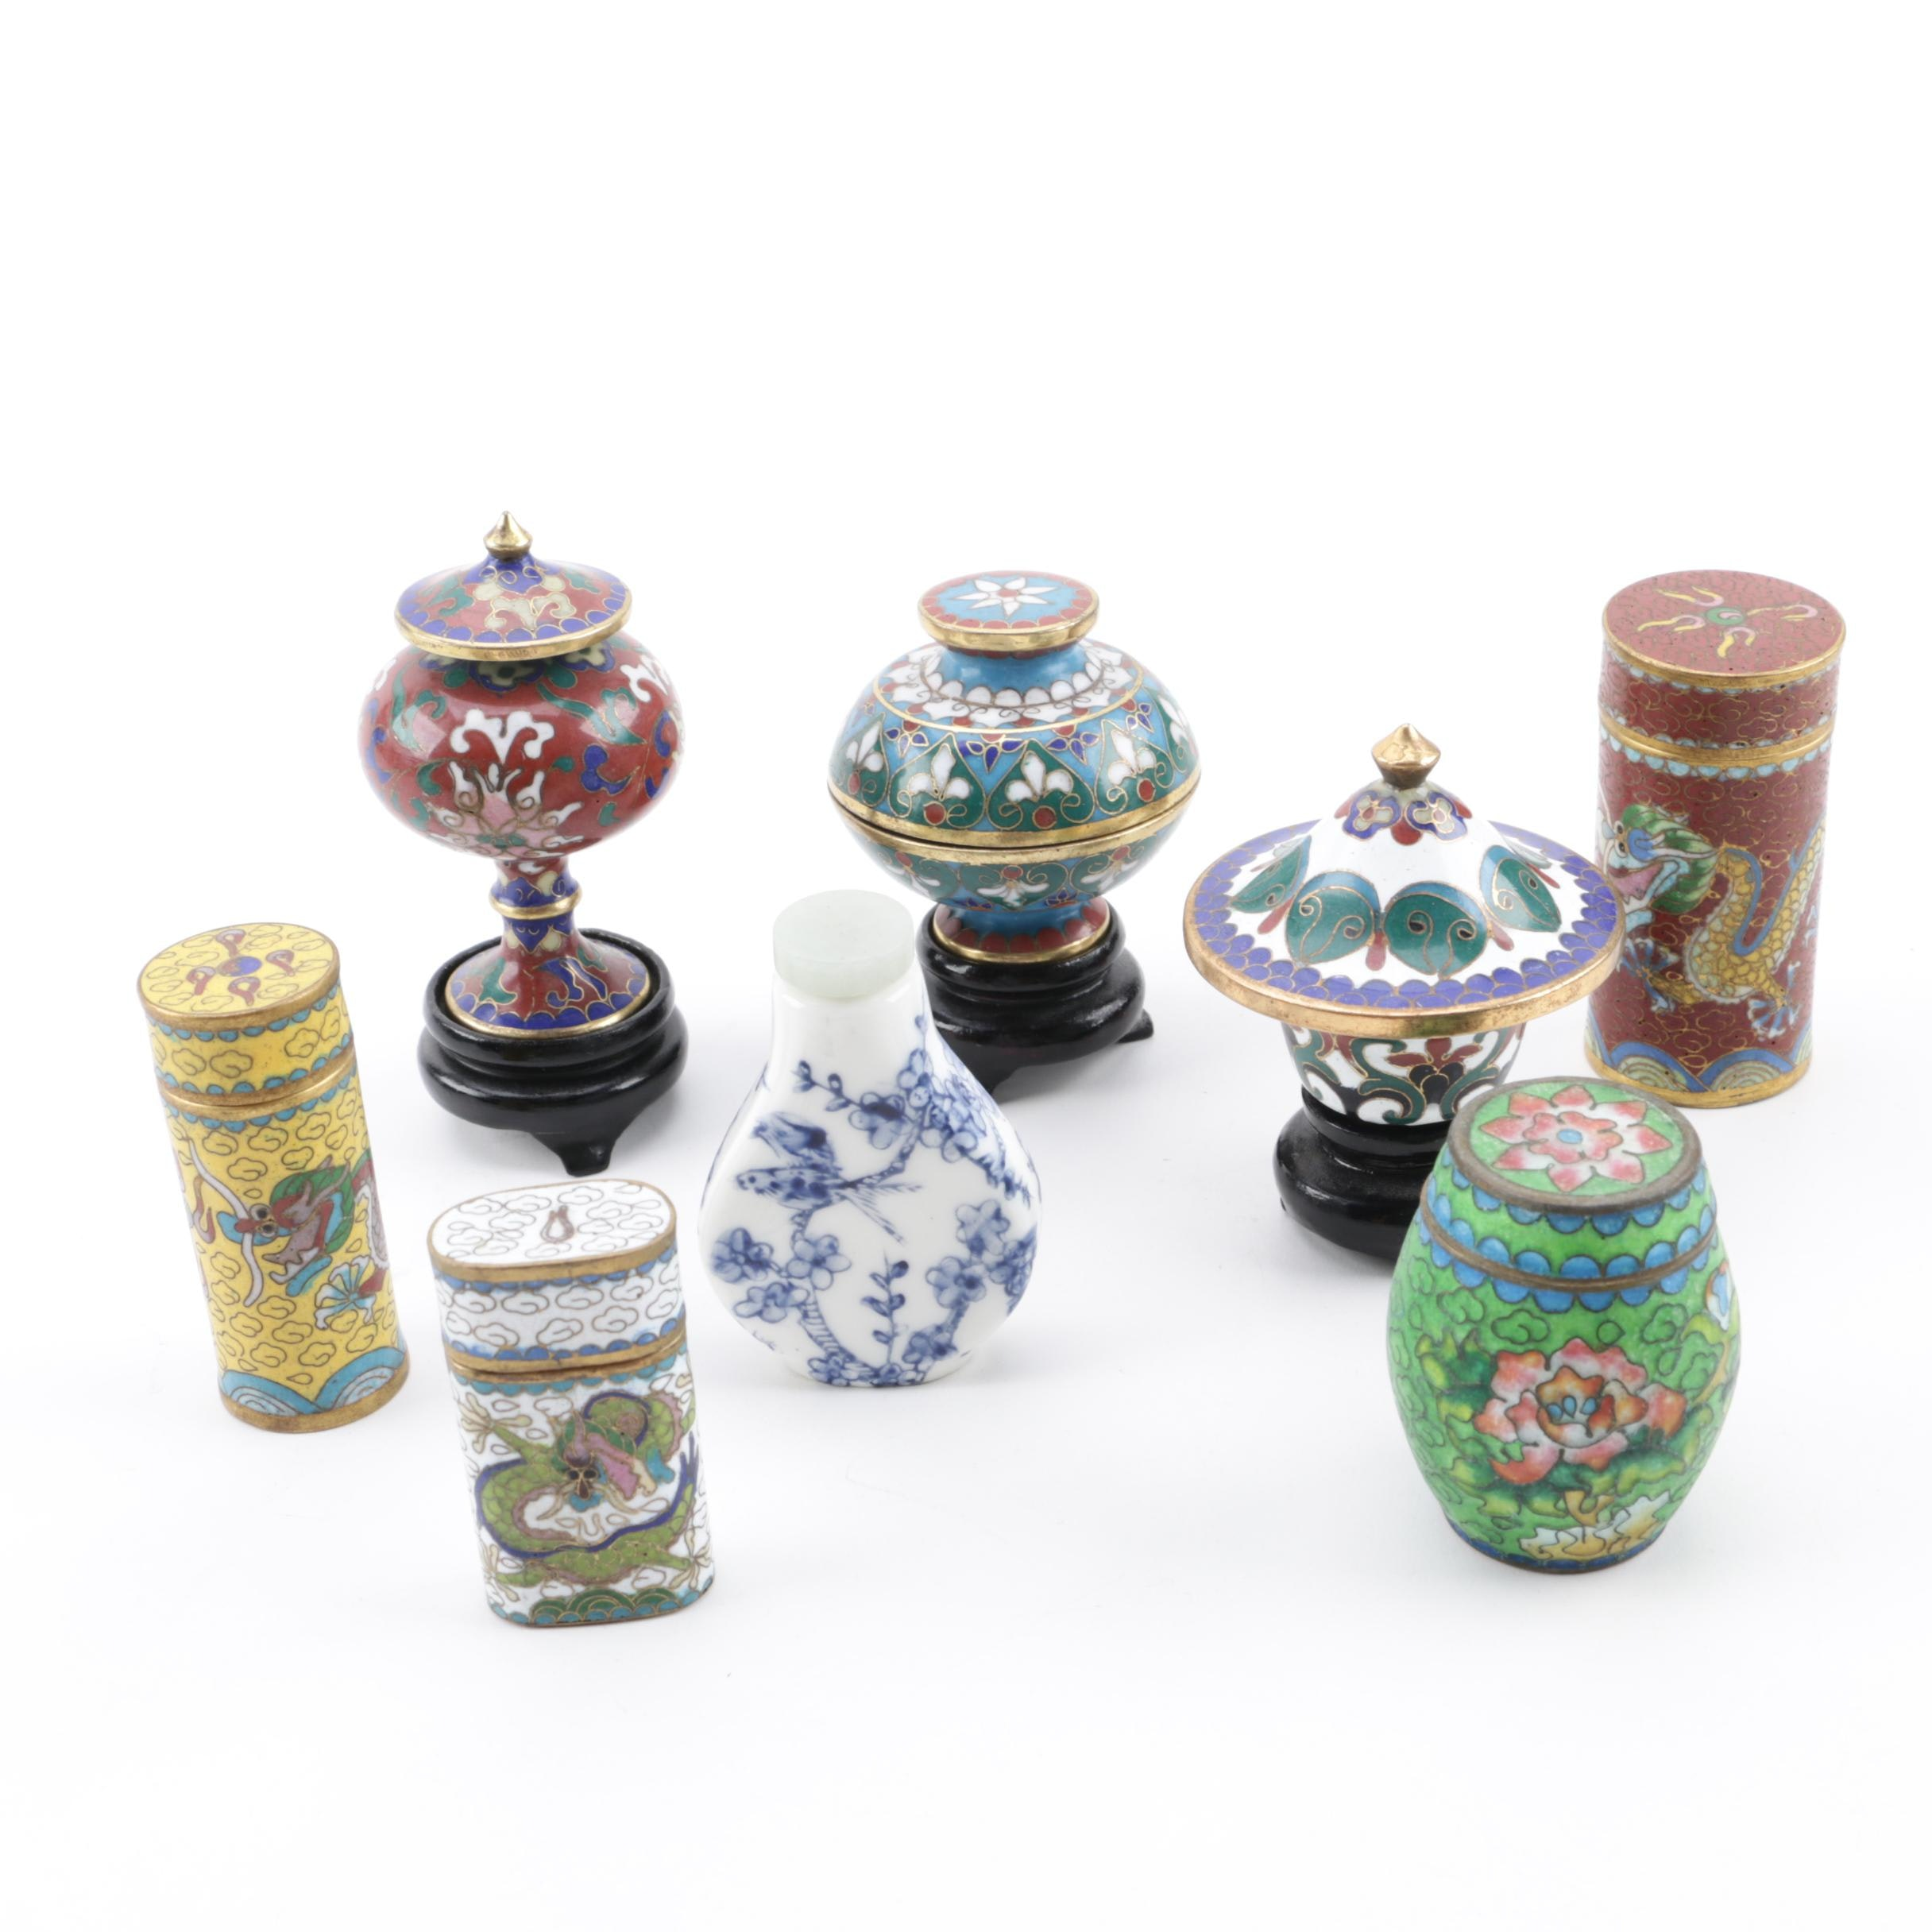 Chinese Miniature Cloisonné Boxes and Jars with Ceramic Snuff Bottle